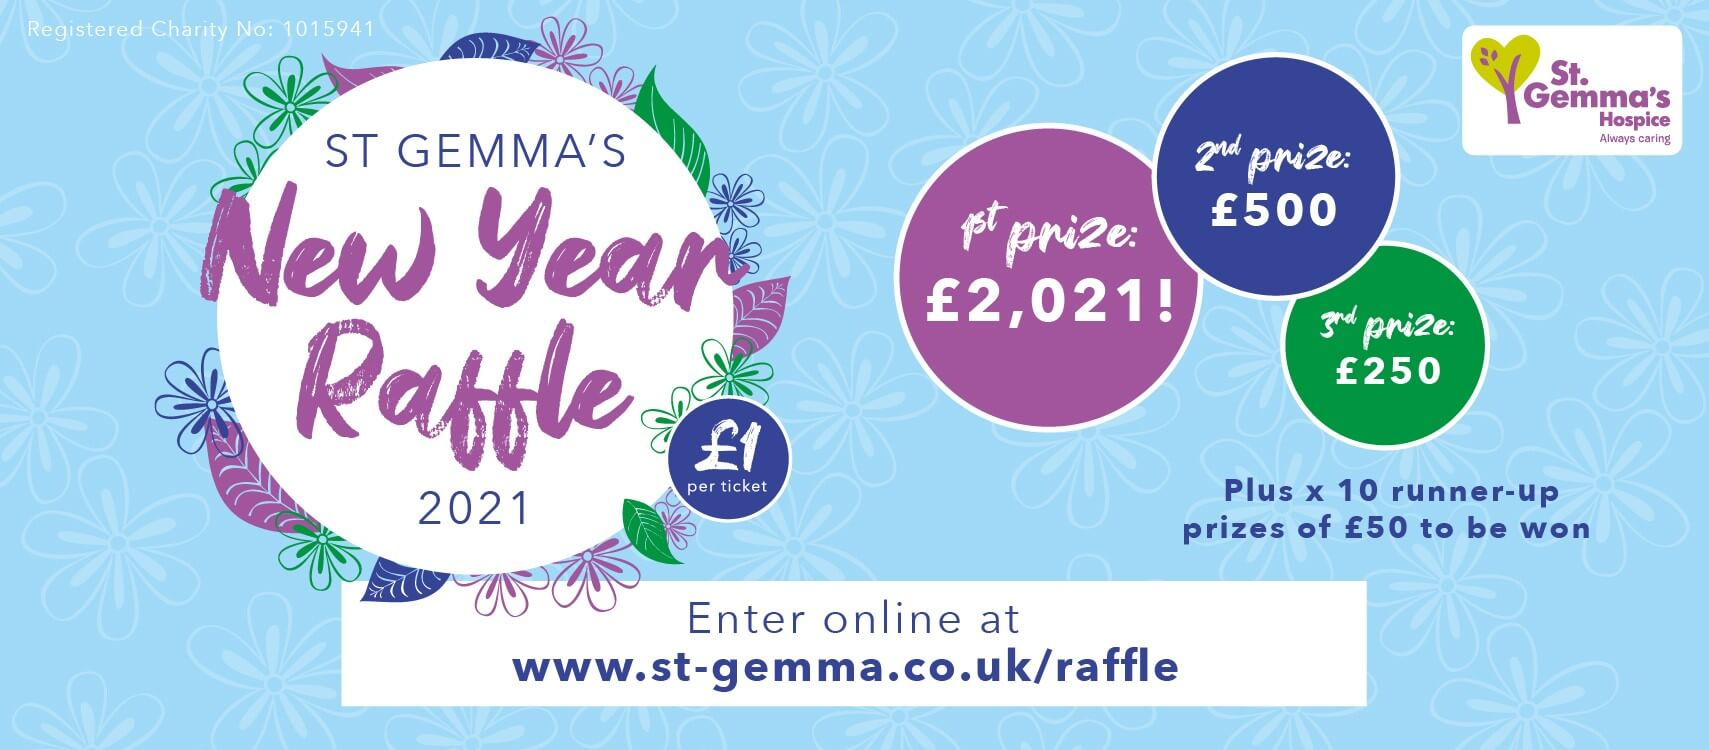 The St Gemma's New Year Raffle 2021 - 1st prize £2021. Enter online.